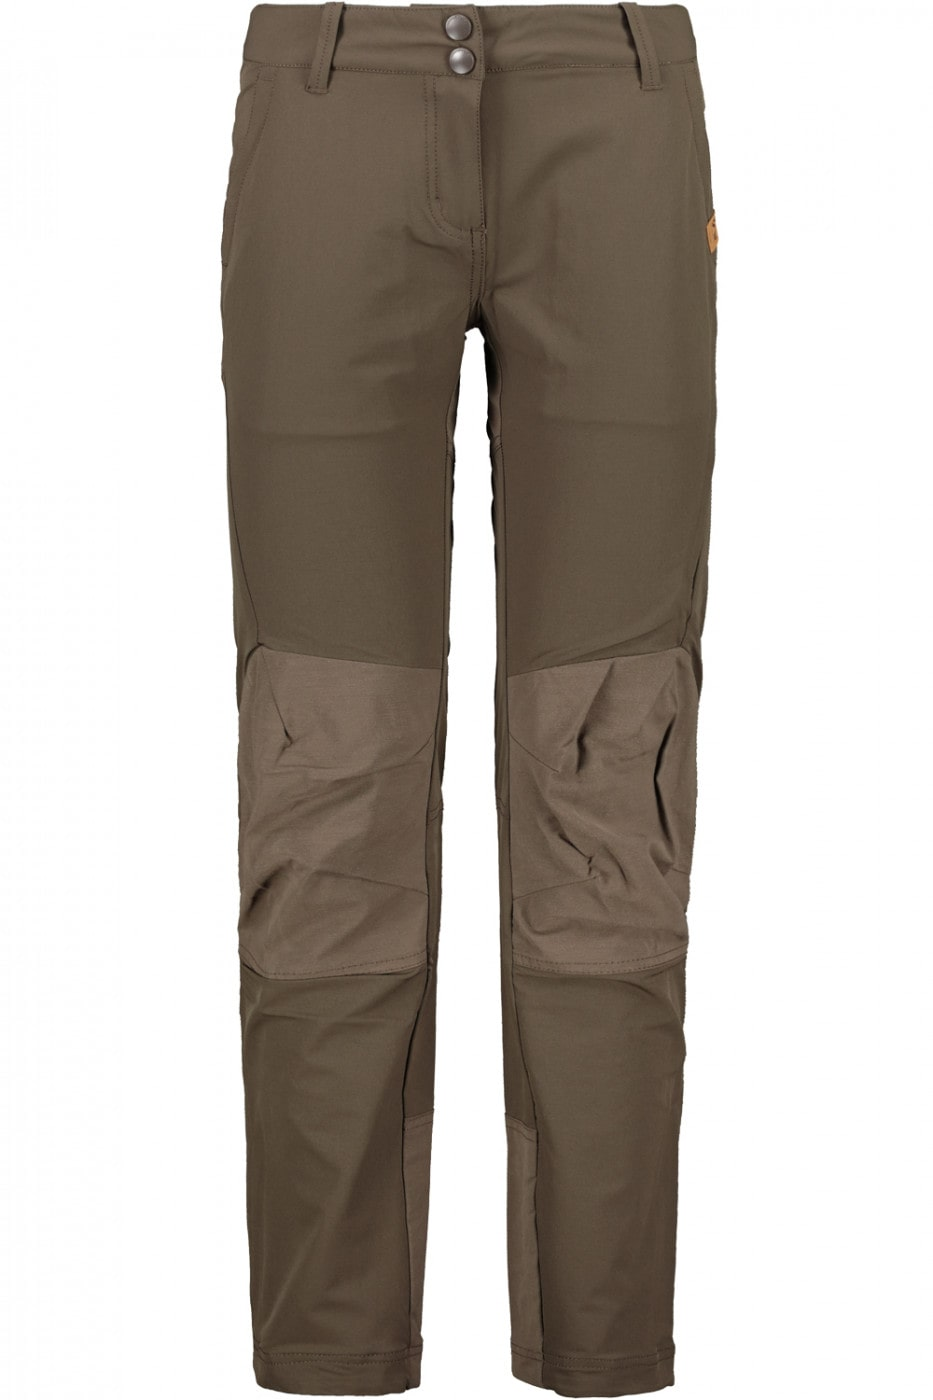 Women's pants NORTHFINDER GAFTA